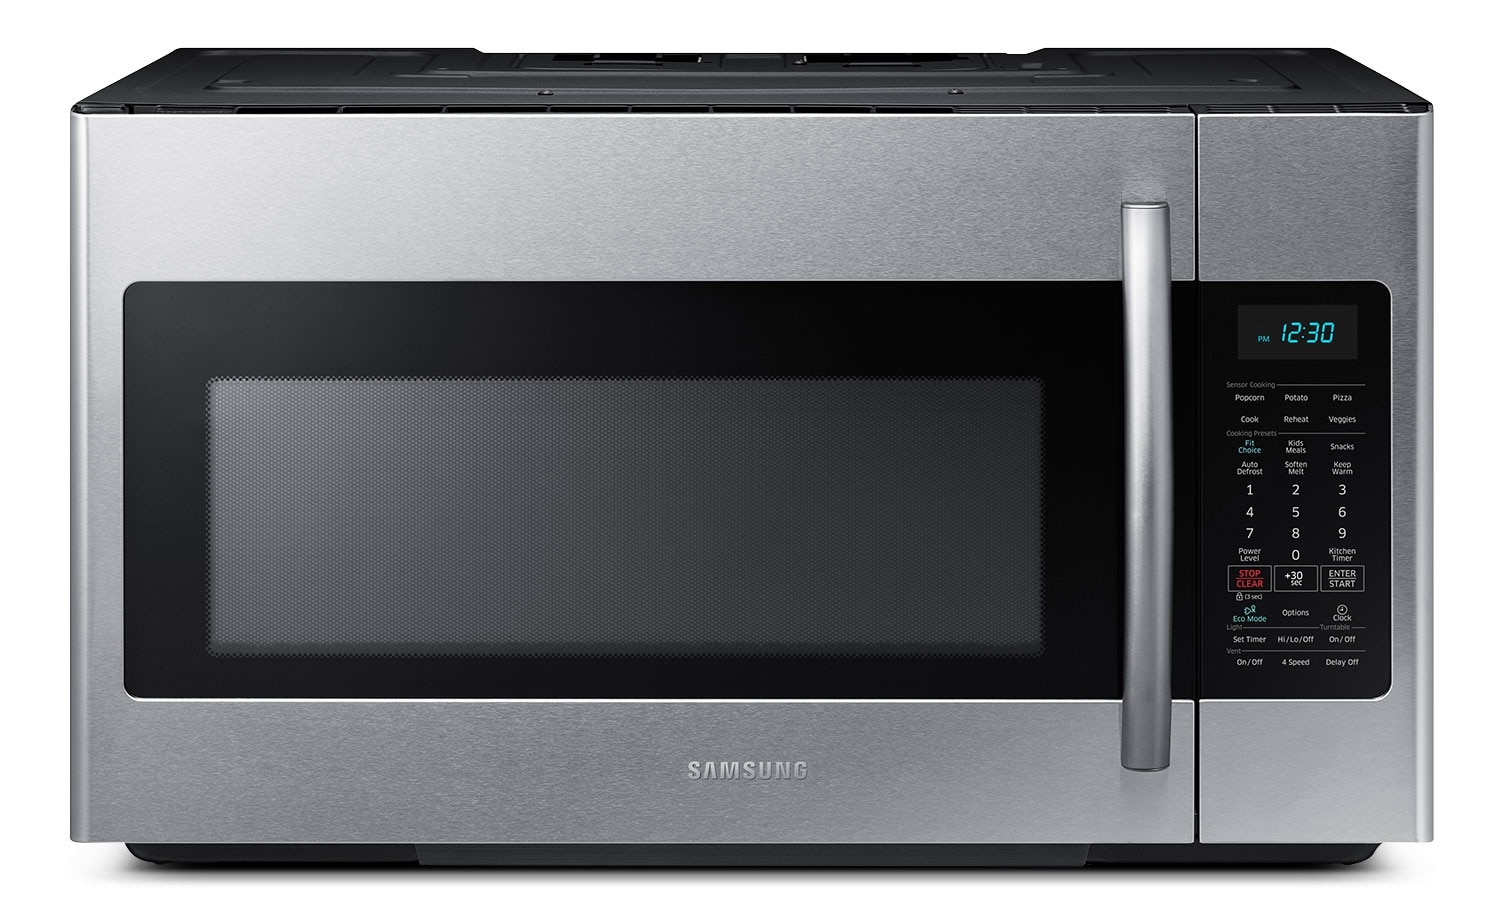 Samsung 1.8 Cu. Ft. Over-the-Range Microwave – Stainless Steel